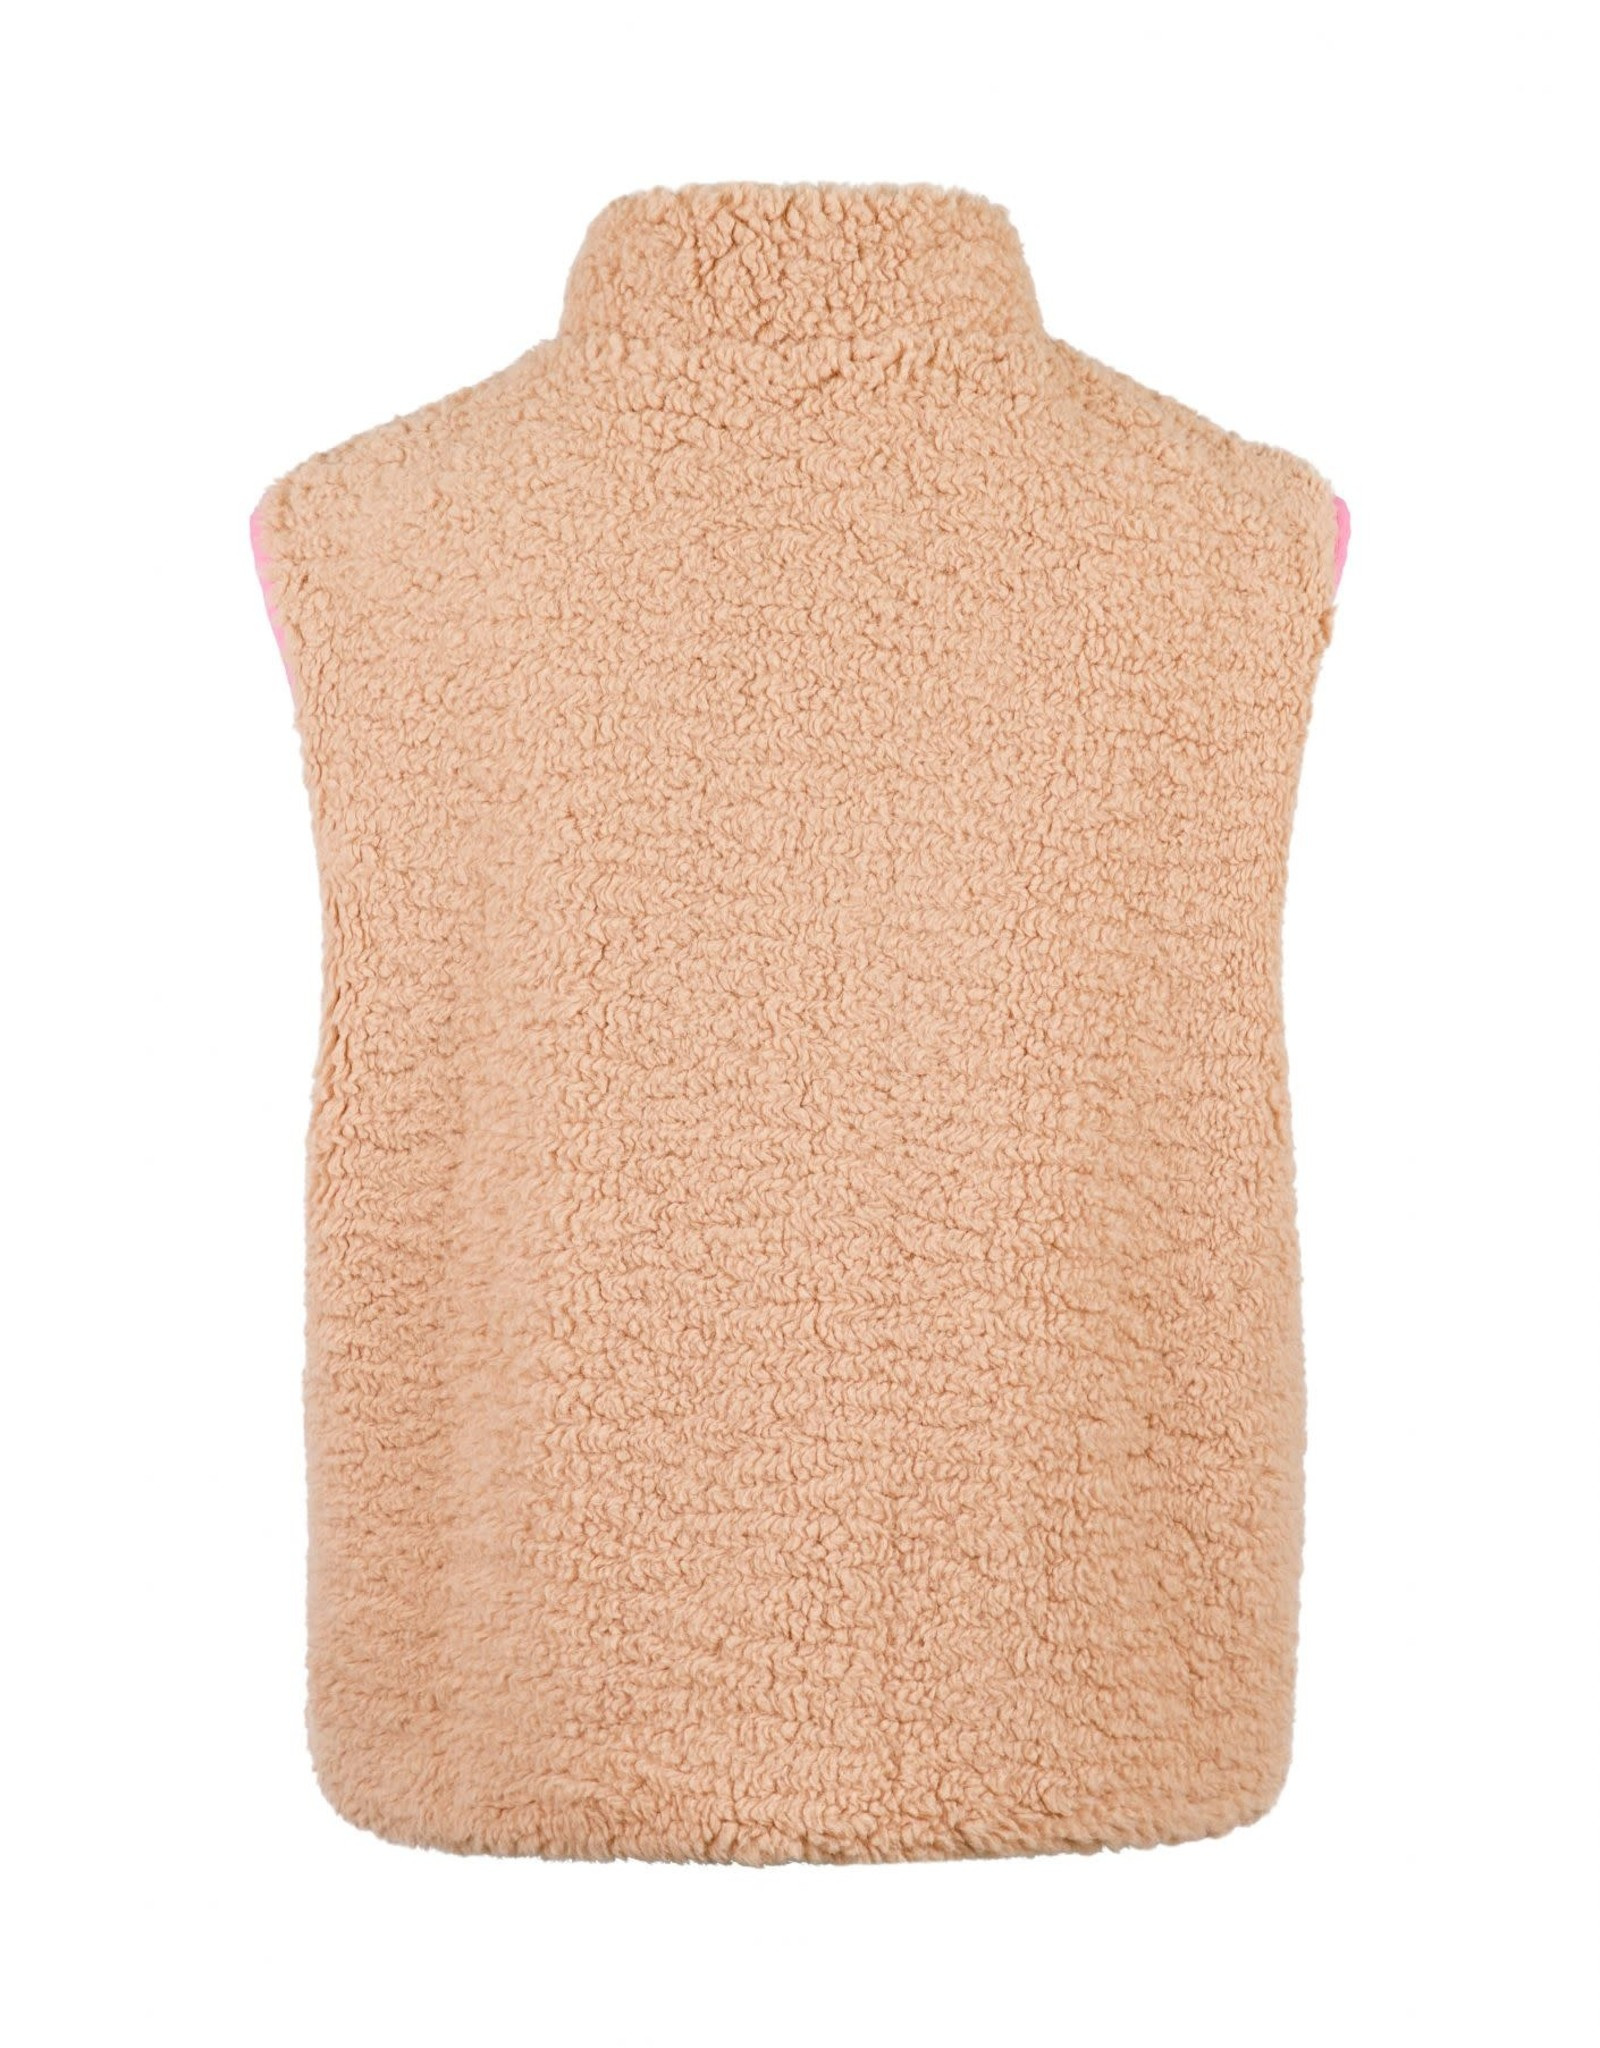 The Golden House Teddy Waistcoat 'Scout' - Pink